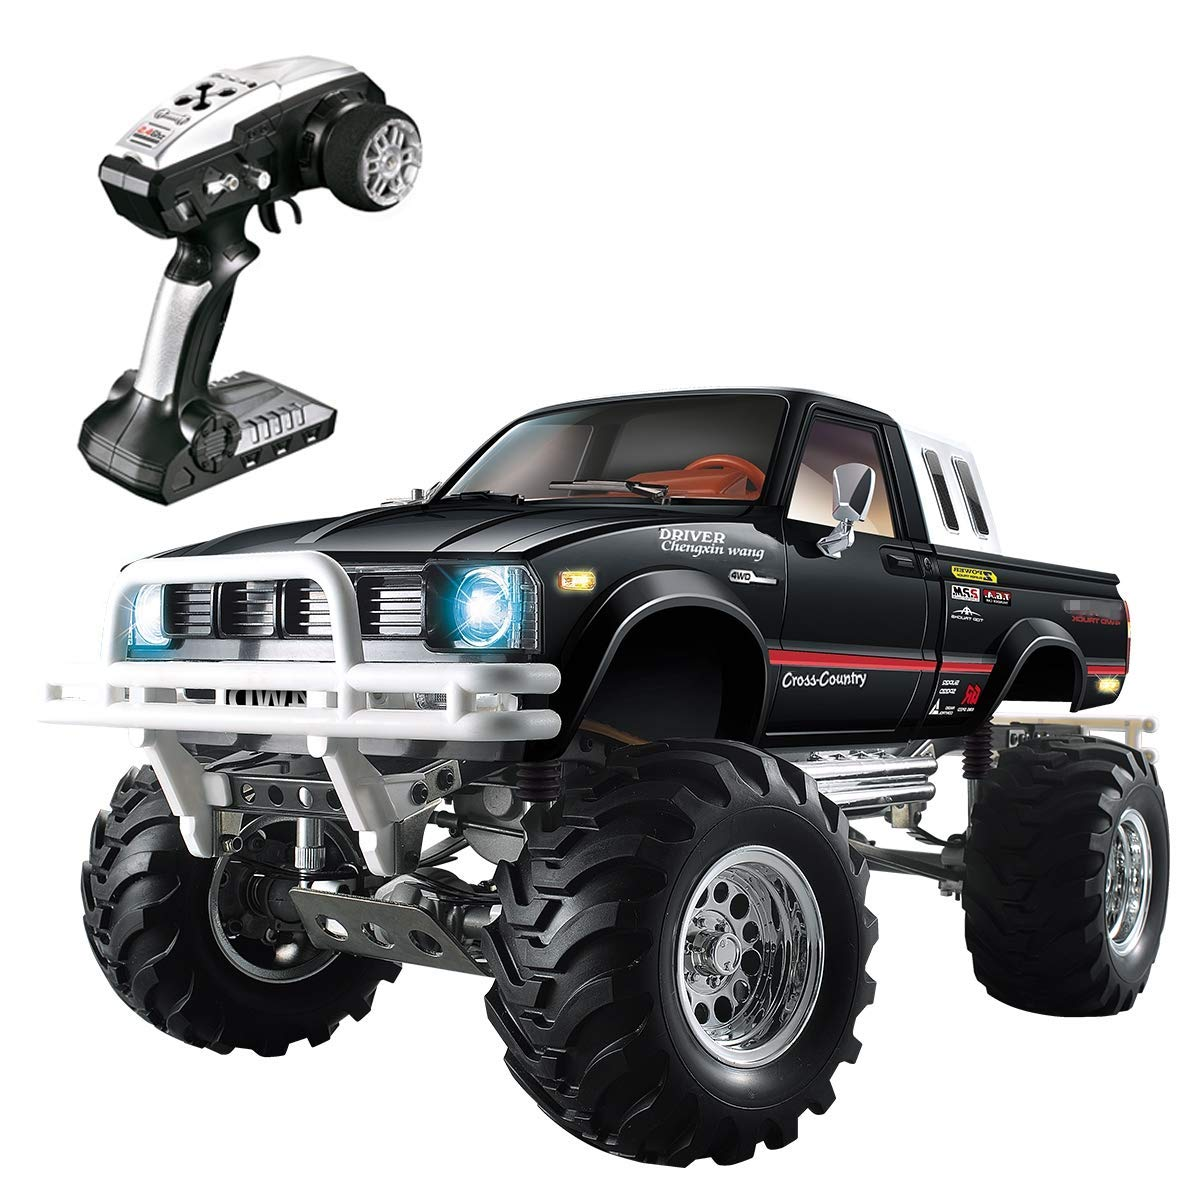 RC Car 1/10 Scale Radio Control 4WD Off-Road Pickkup Truck Large Size 2.4Ghz Remote Control Truck with 3-Speed for Adult and Kid remote control 1 32 detachable rc trailer truck toy with light and sounds car